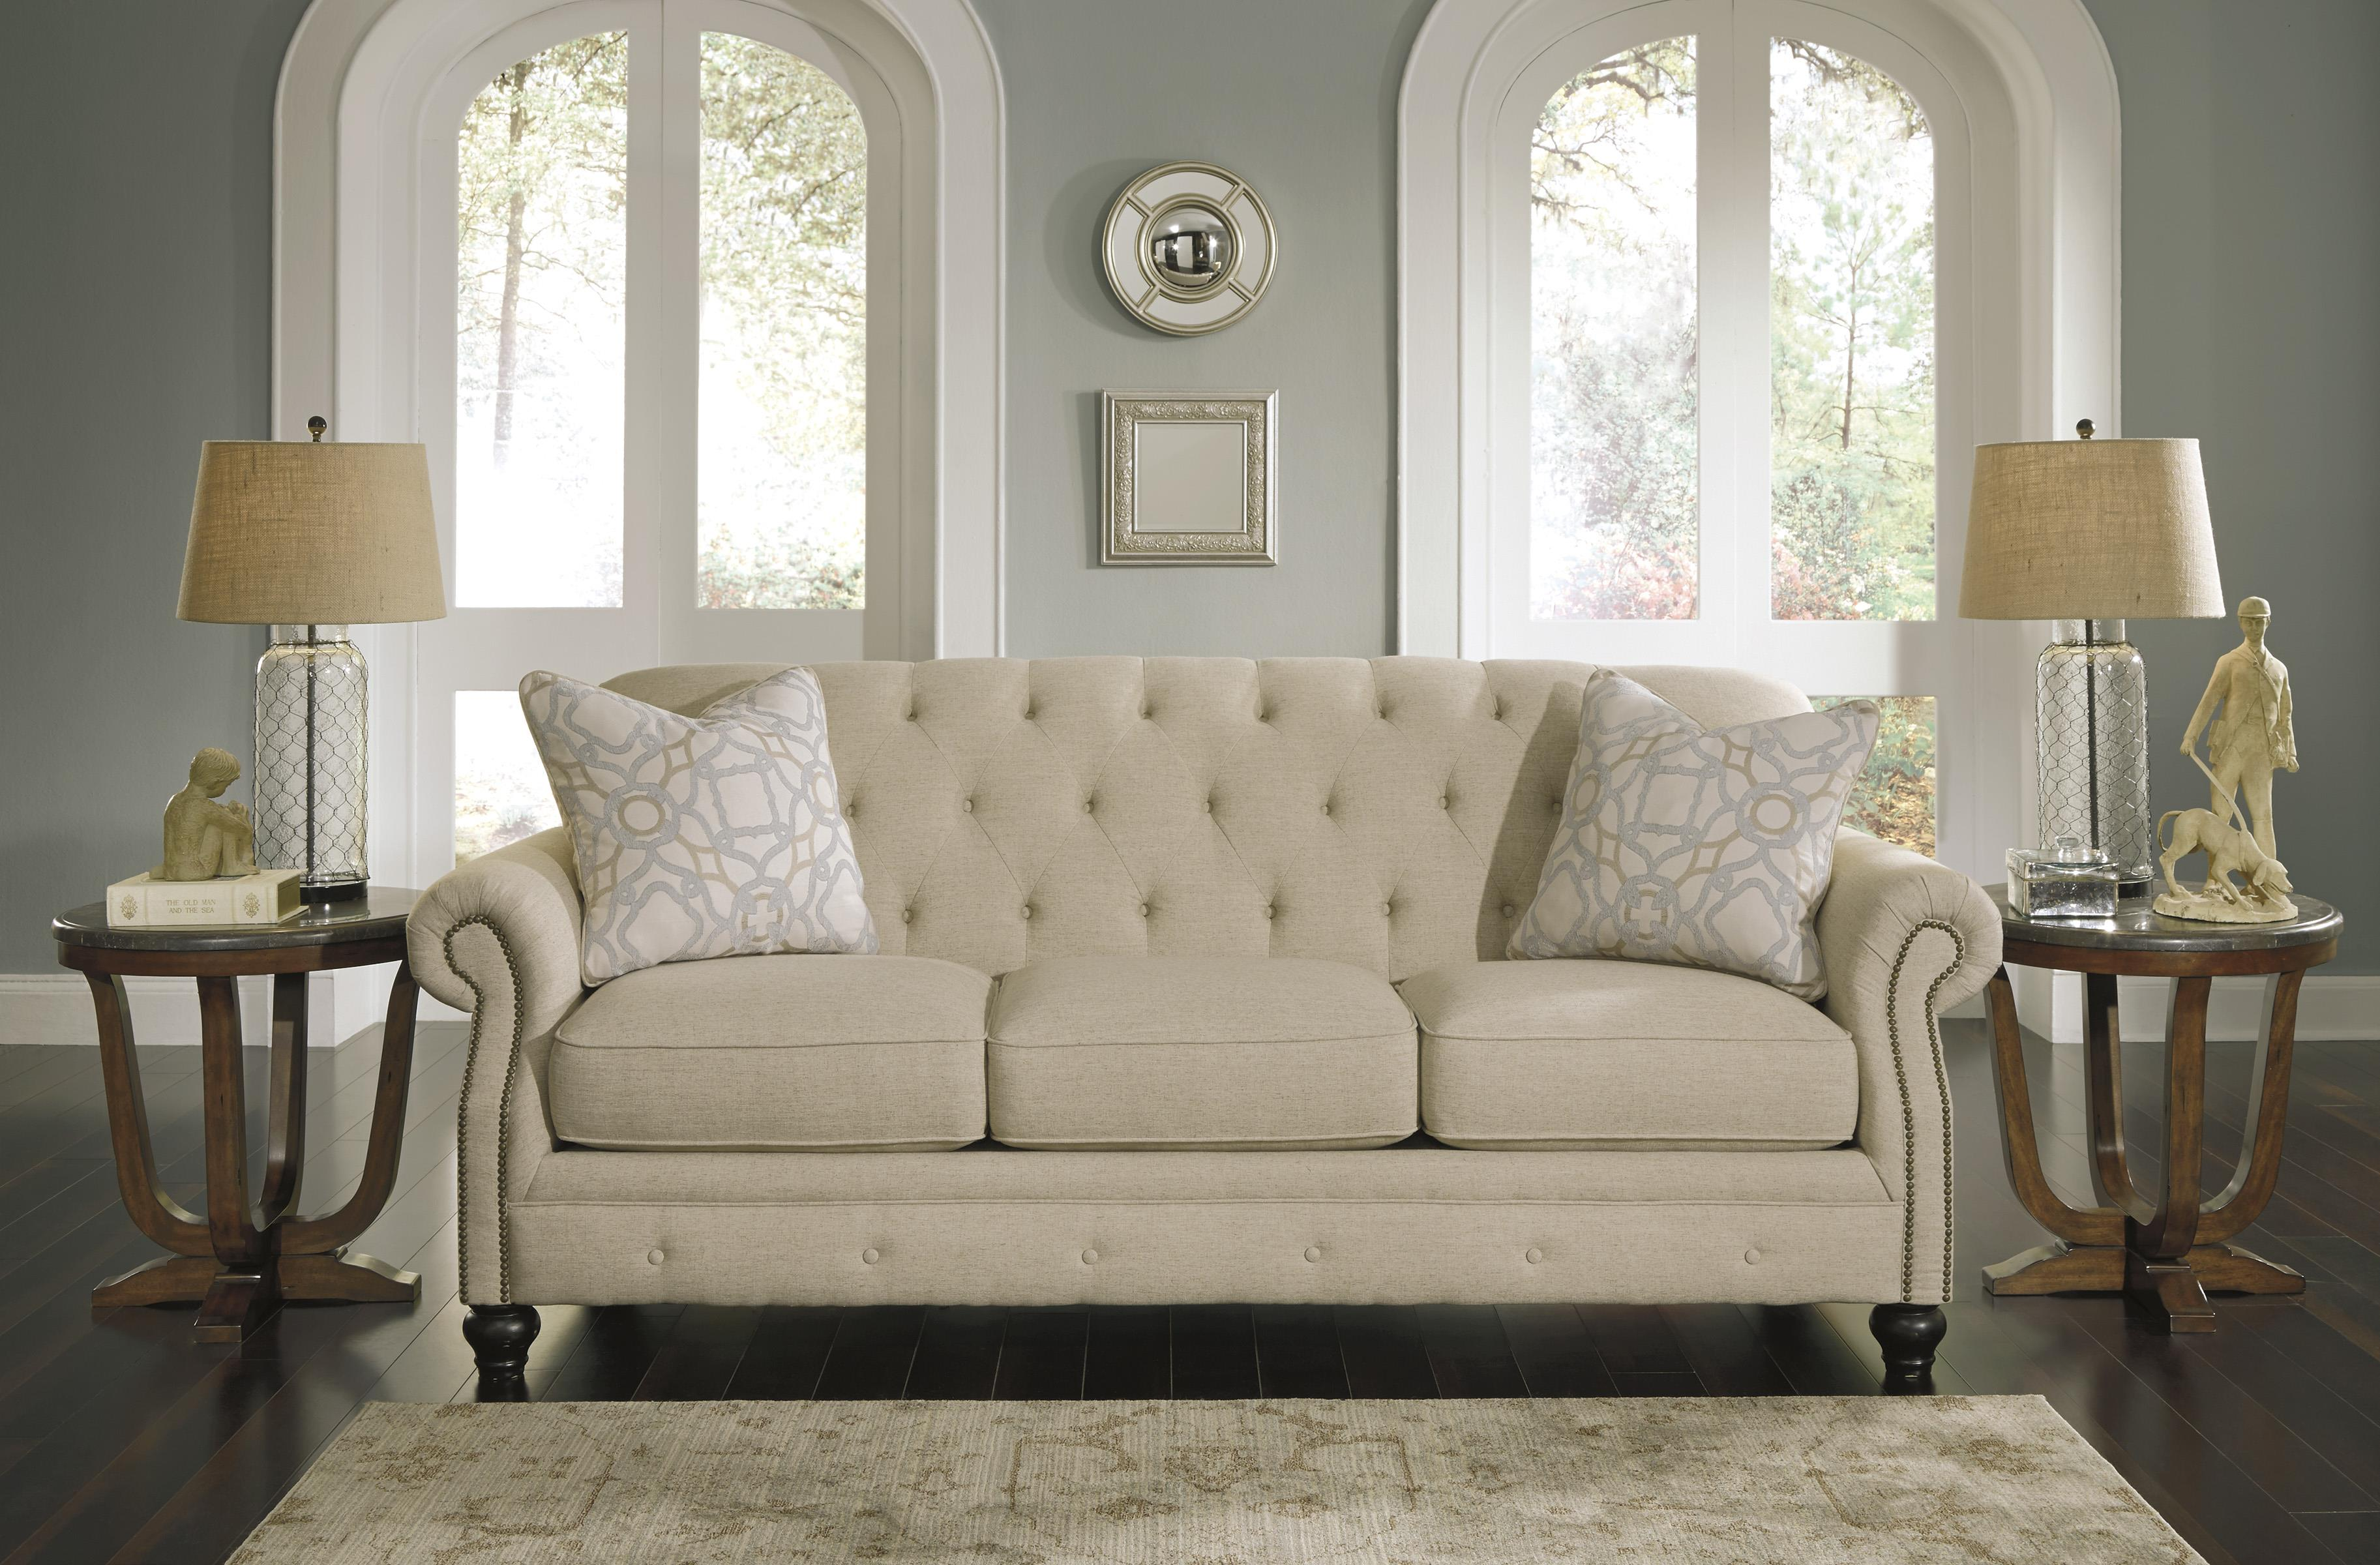 Traditional Sofa With Tufted Back And Feather Blend Accent